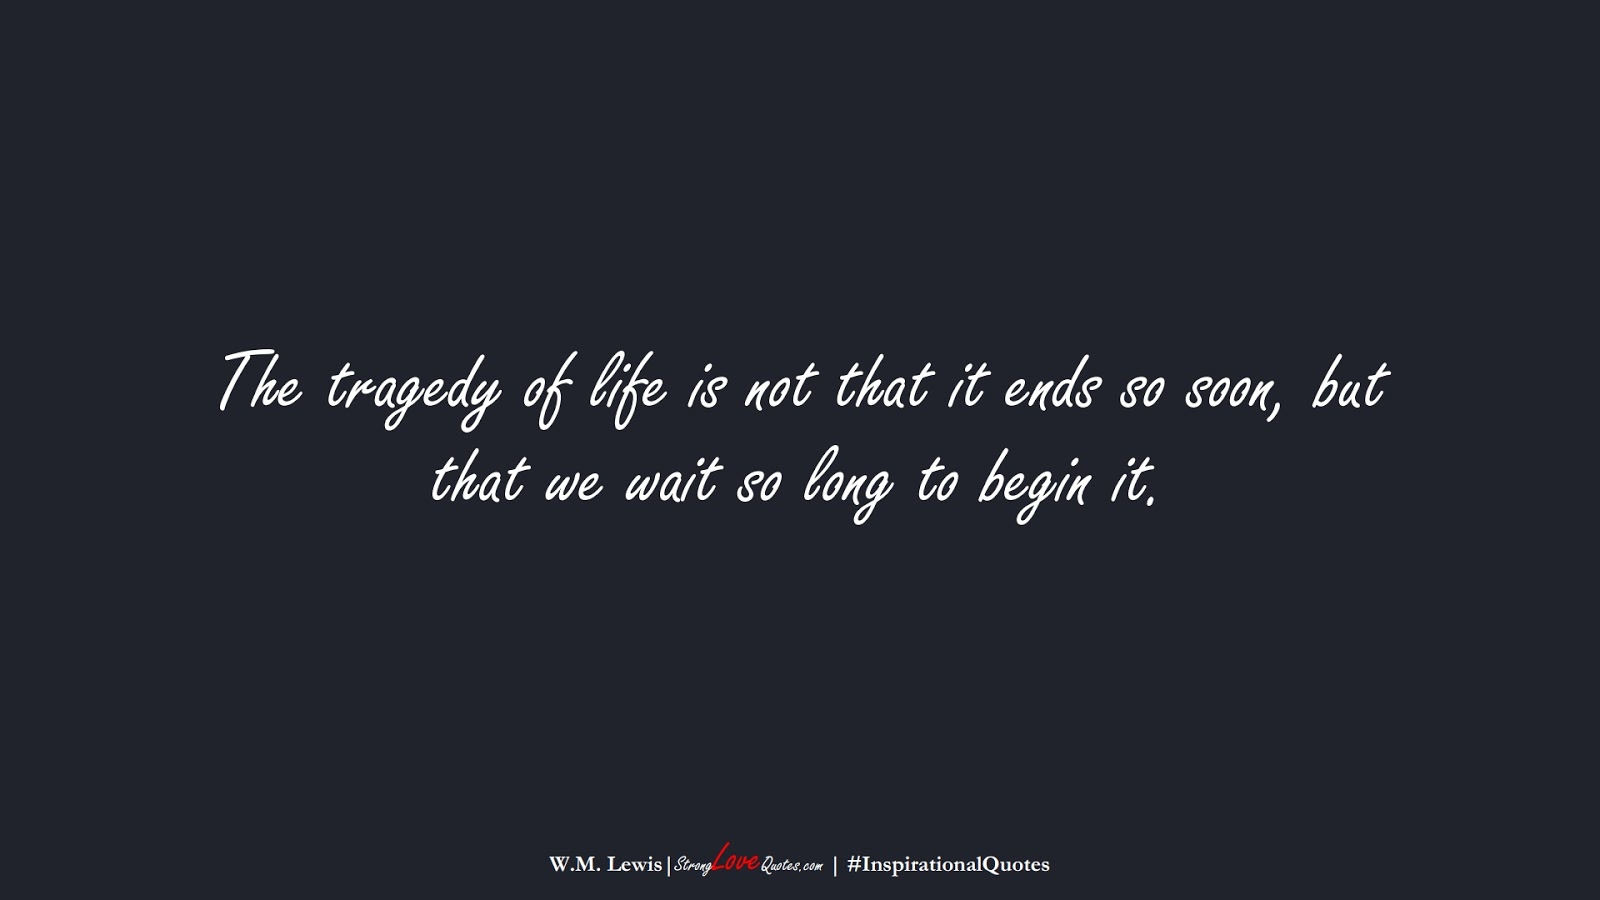 The tragedy of life is not that it ends so soon, but that we wait so long to begin it. (W.M. Lewis);  #InspirationalQuotes